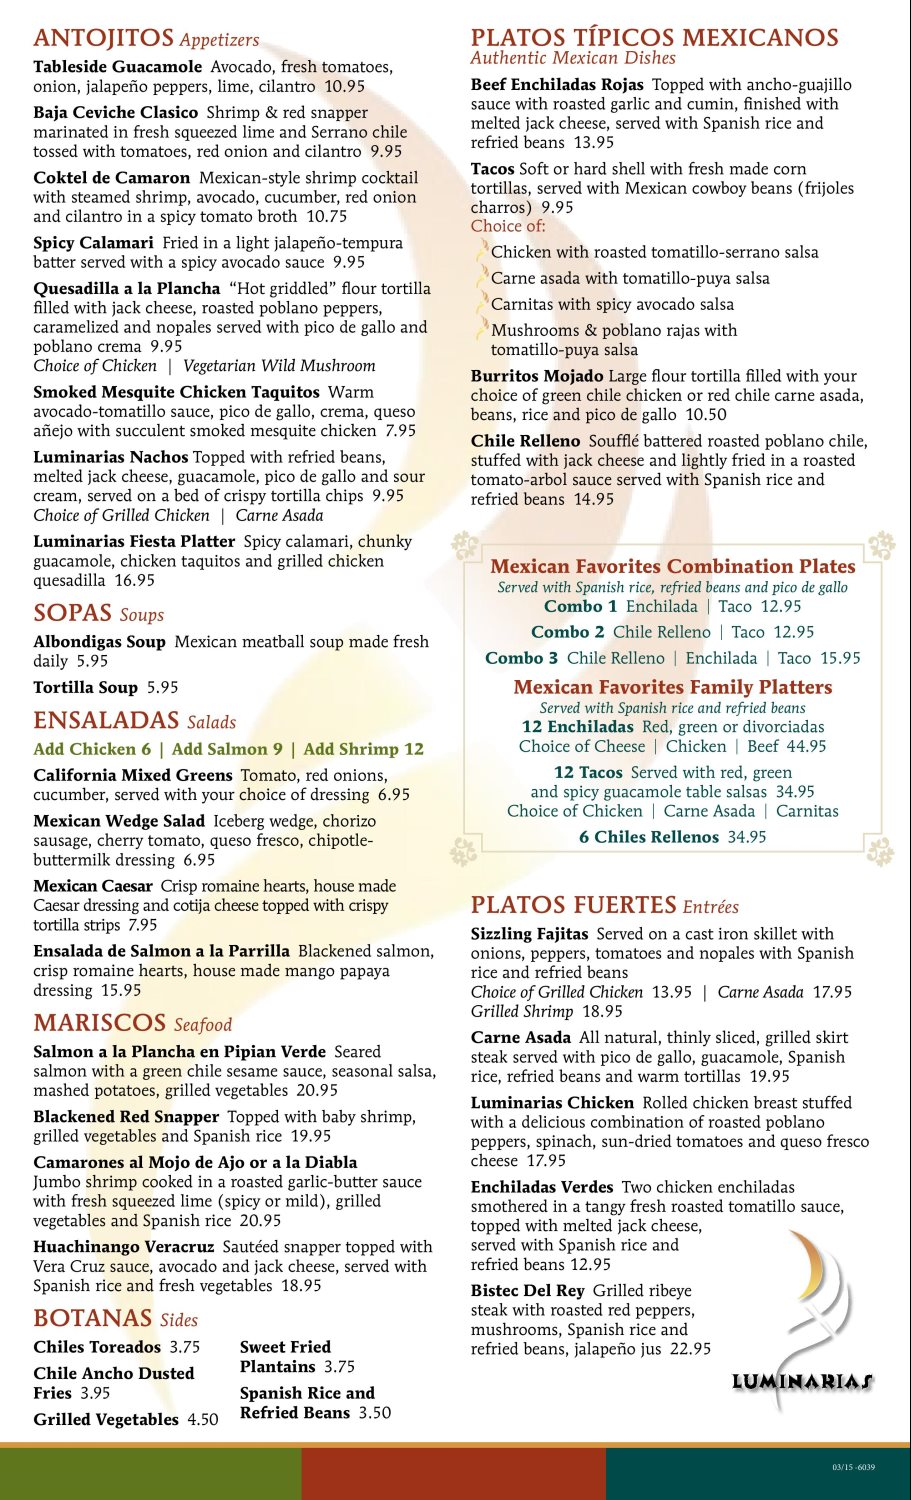 New Luminarias Menu-page-001.jpg